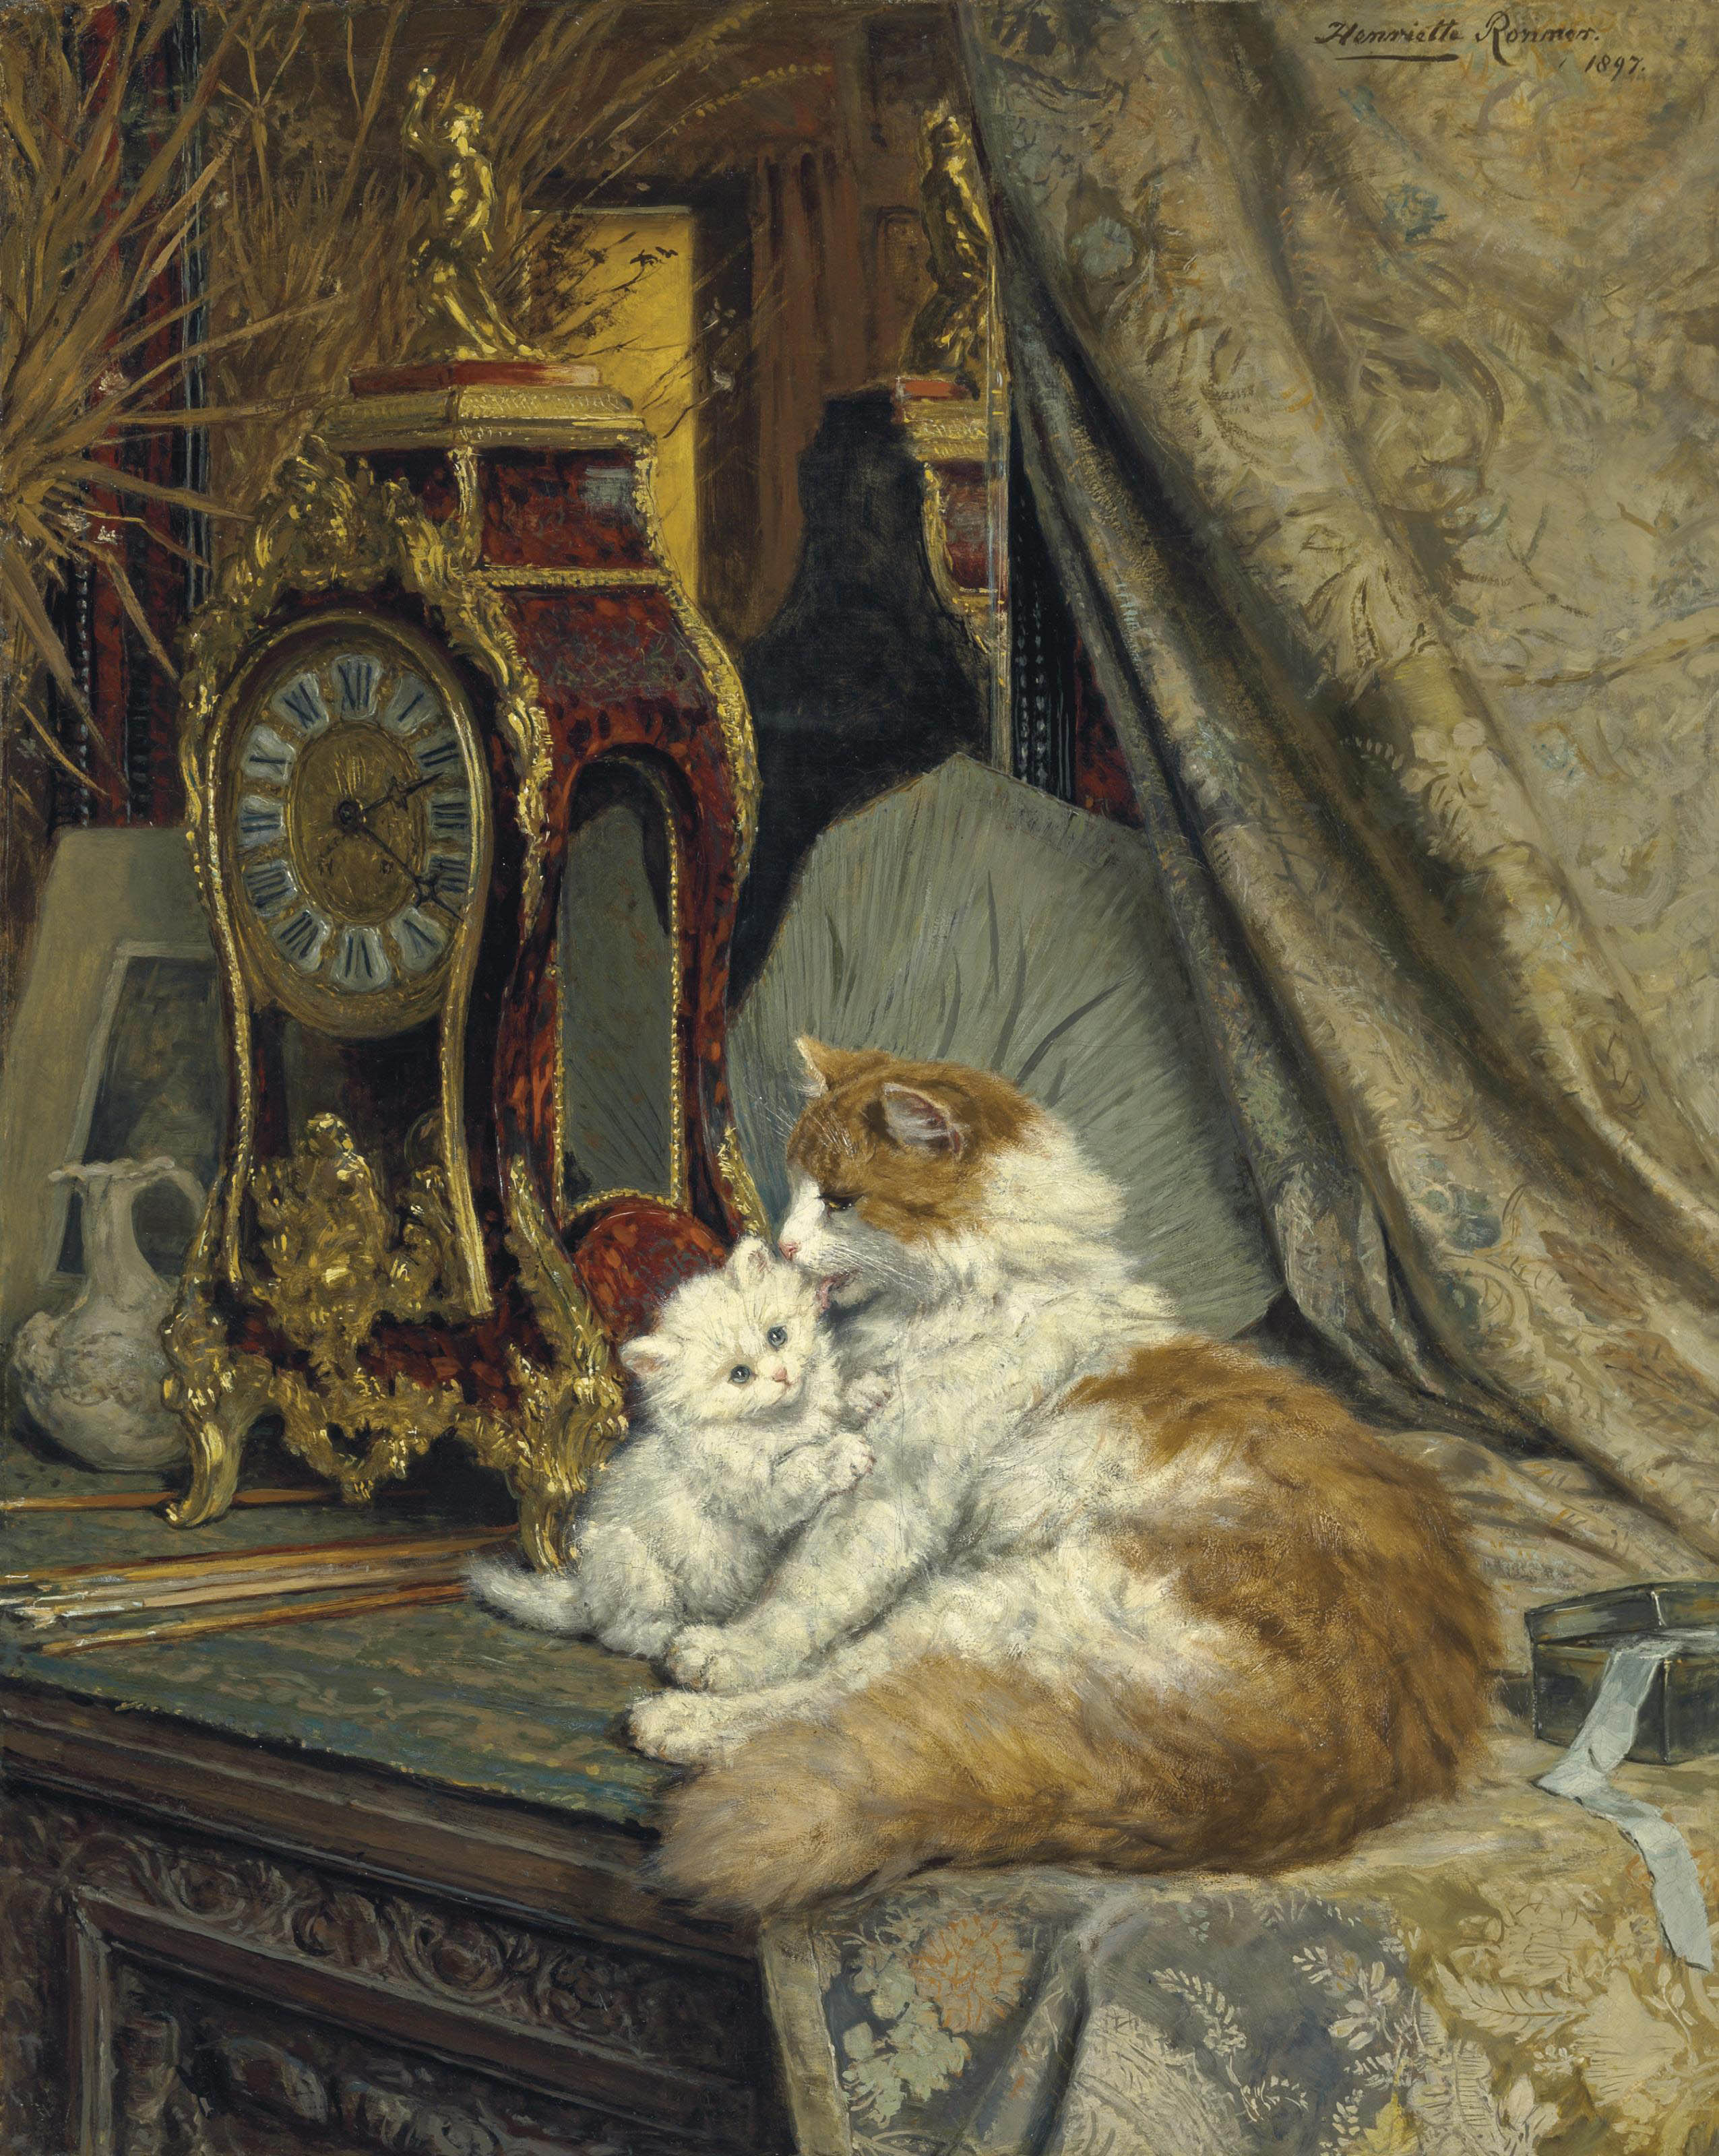 A Mother Cat and her Kitten with a Bracket Clock